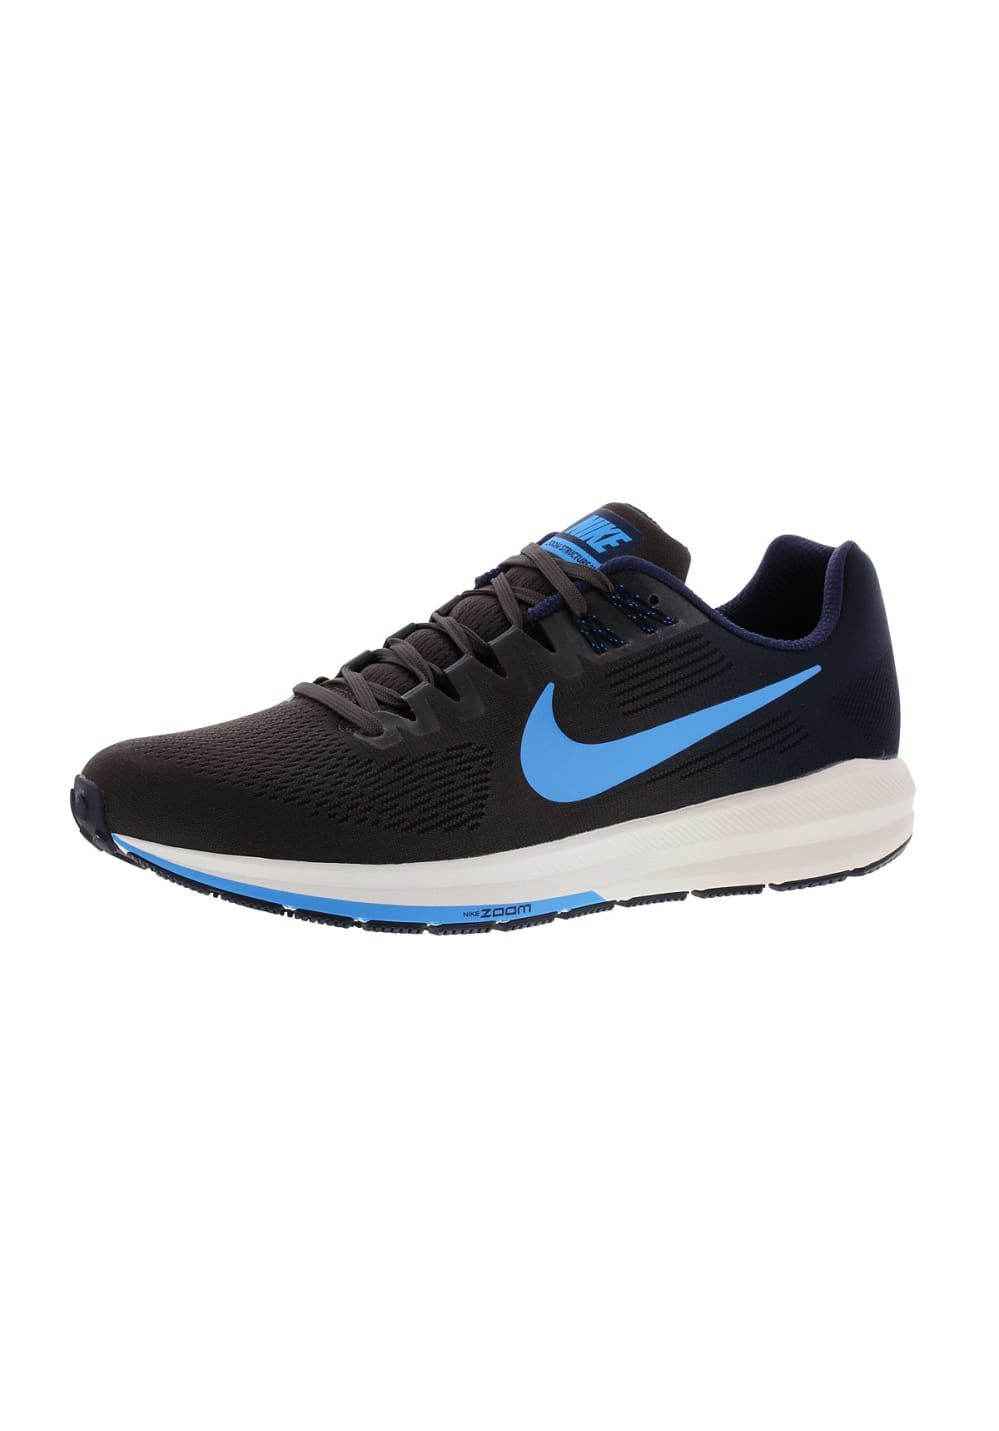 quality design ce040 081d7 Nike Air Zoom Structure 21 - Chaussures running pour Homme - Noir Boutiques,  Nike Air